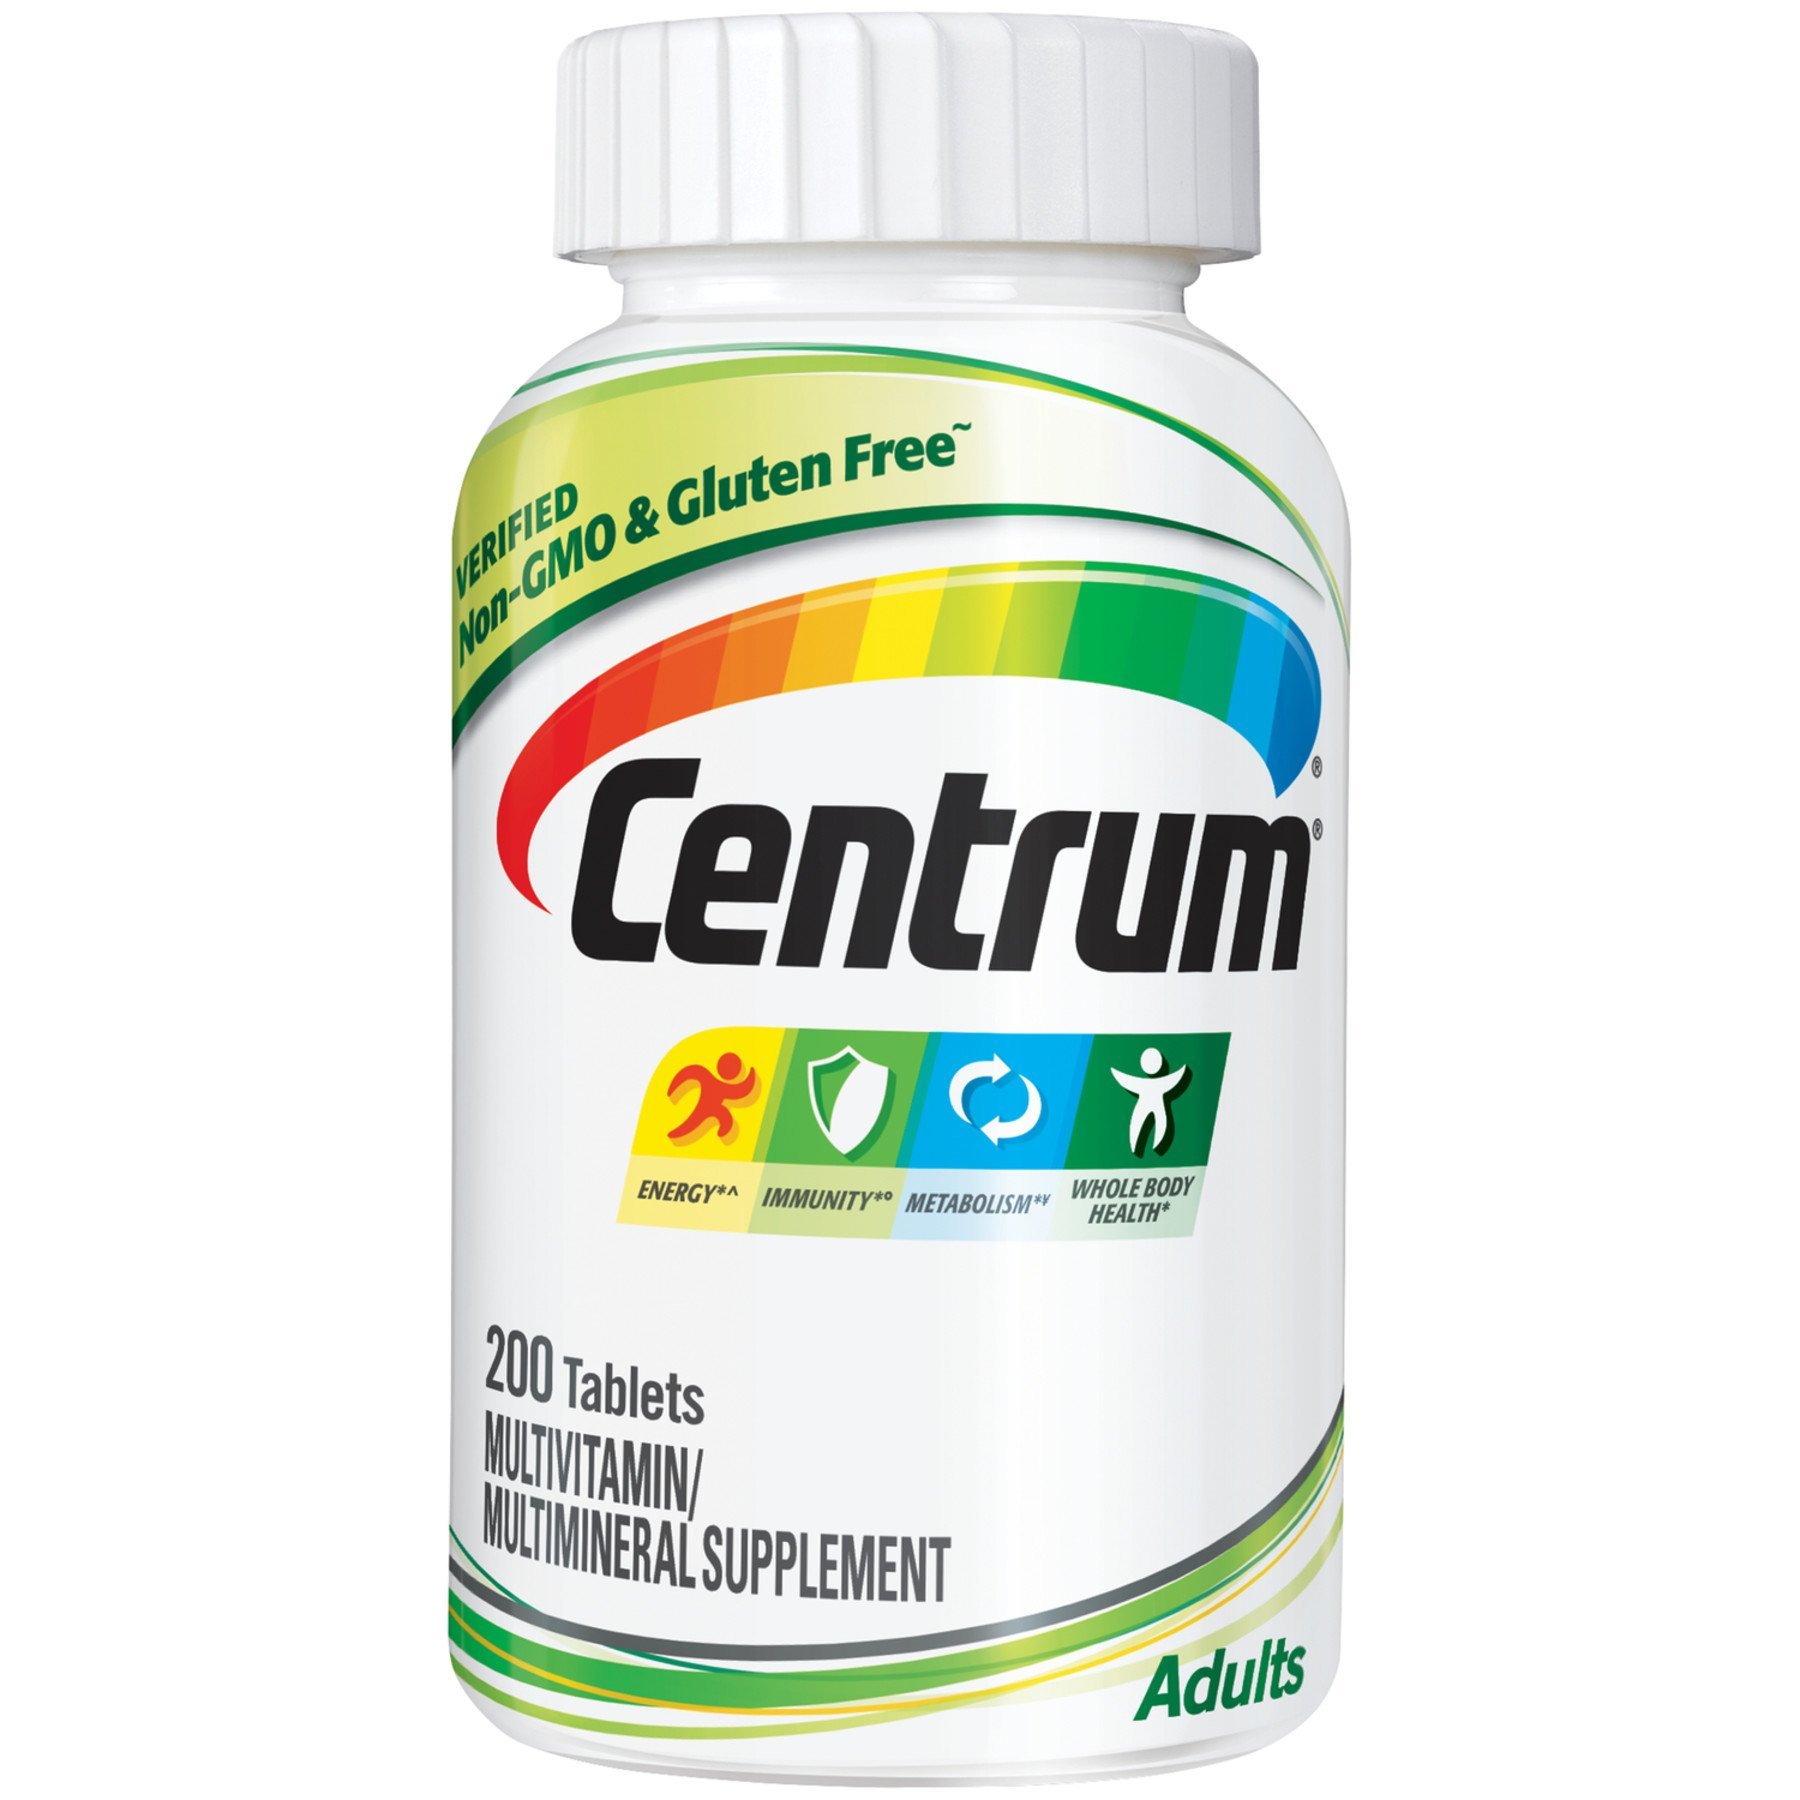 Centrum Multivitamin Multimineral Supplement Adults Under 50 Tablets Shop Multivitamins At H E B